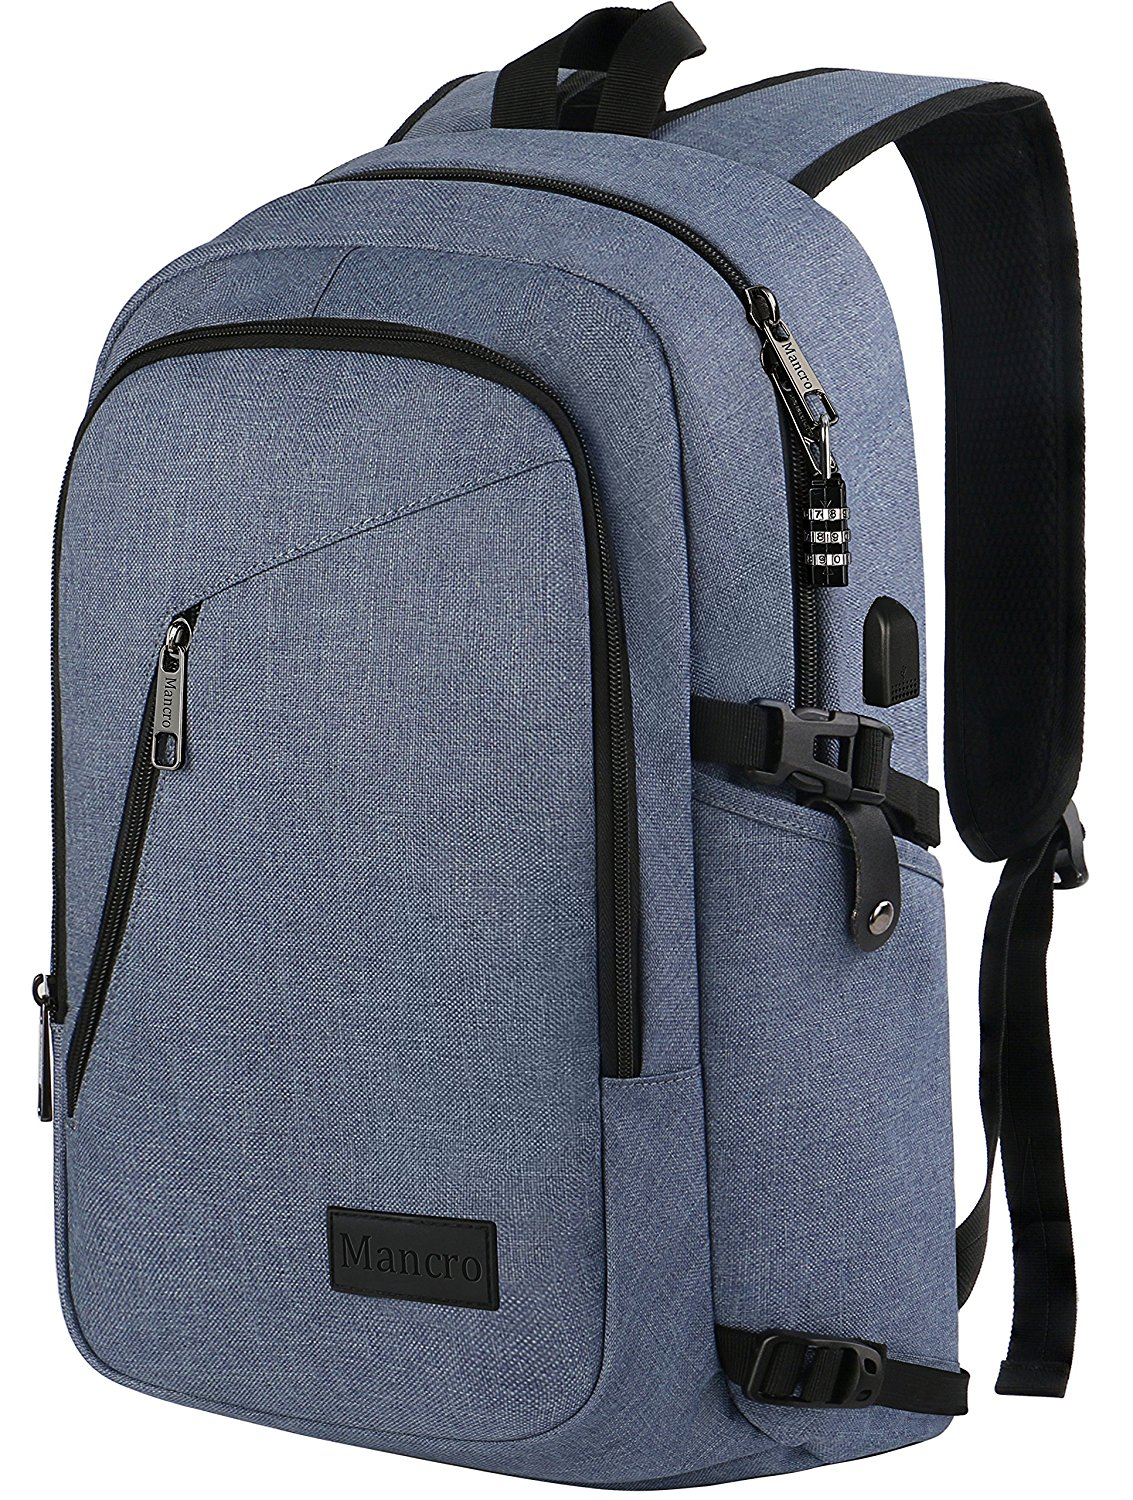 9a236afe1489 The Travel Backpack- Fenix Toulouse Handball